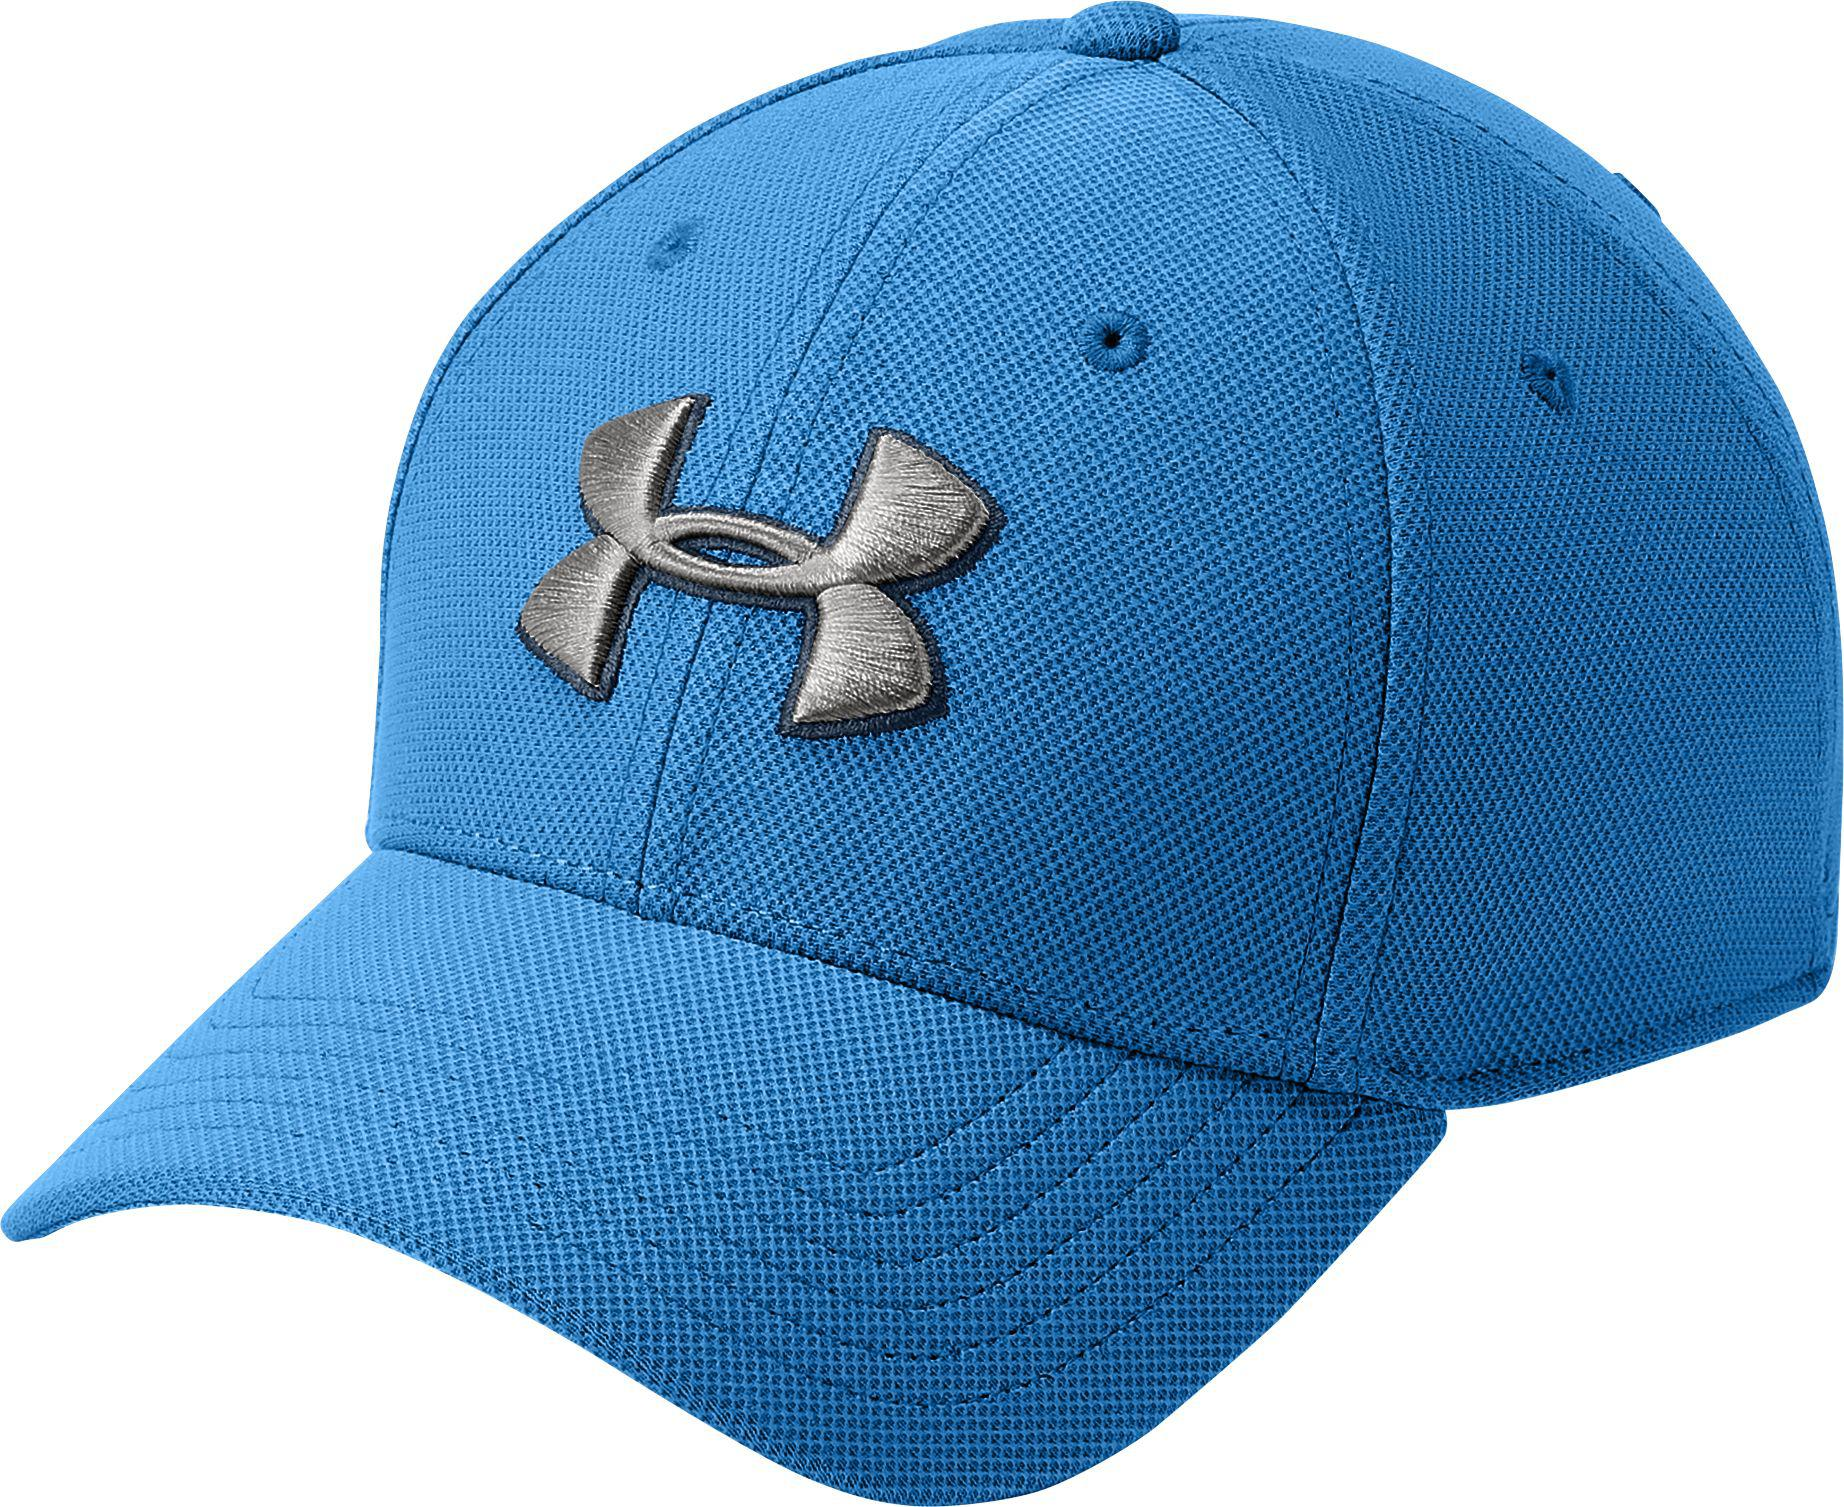 d12c72fac05 Lyst - Under Armour Litzing Hat 3.0 in Blue for Men